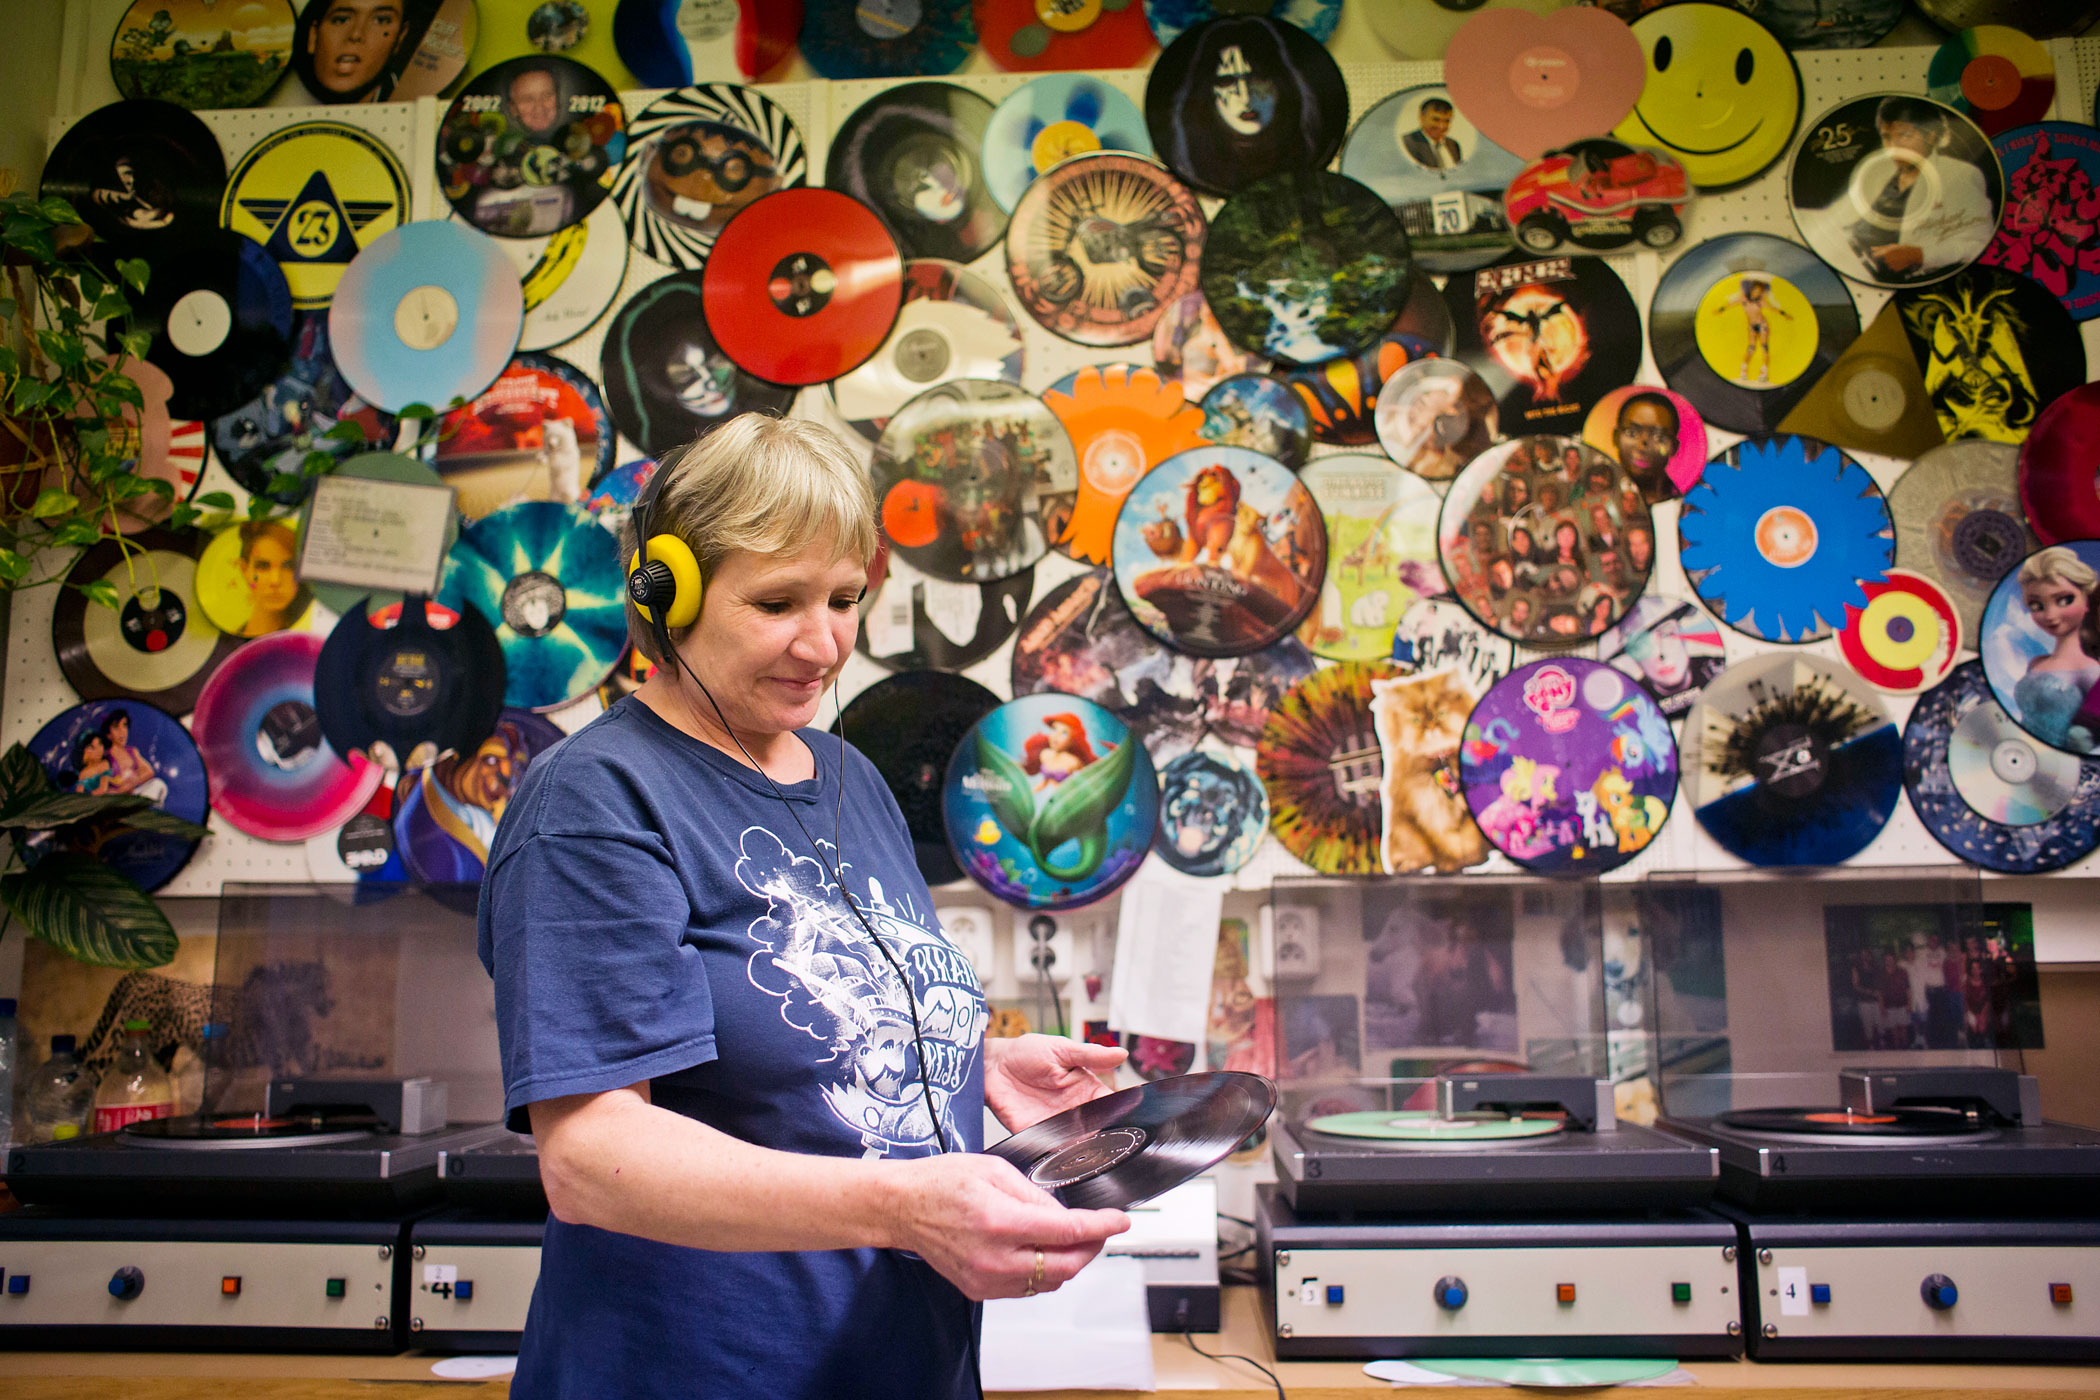 A worker listens through headphones and checks the sound quality of 12  inch vinyl records before they are dispatched, after being manufactured by GZ Media a.s. at their plant in Lodenice, Czech Republic, on Nov. 25, 2014.